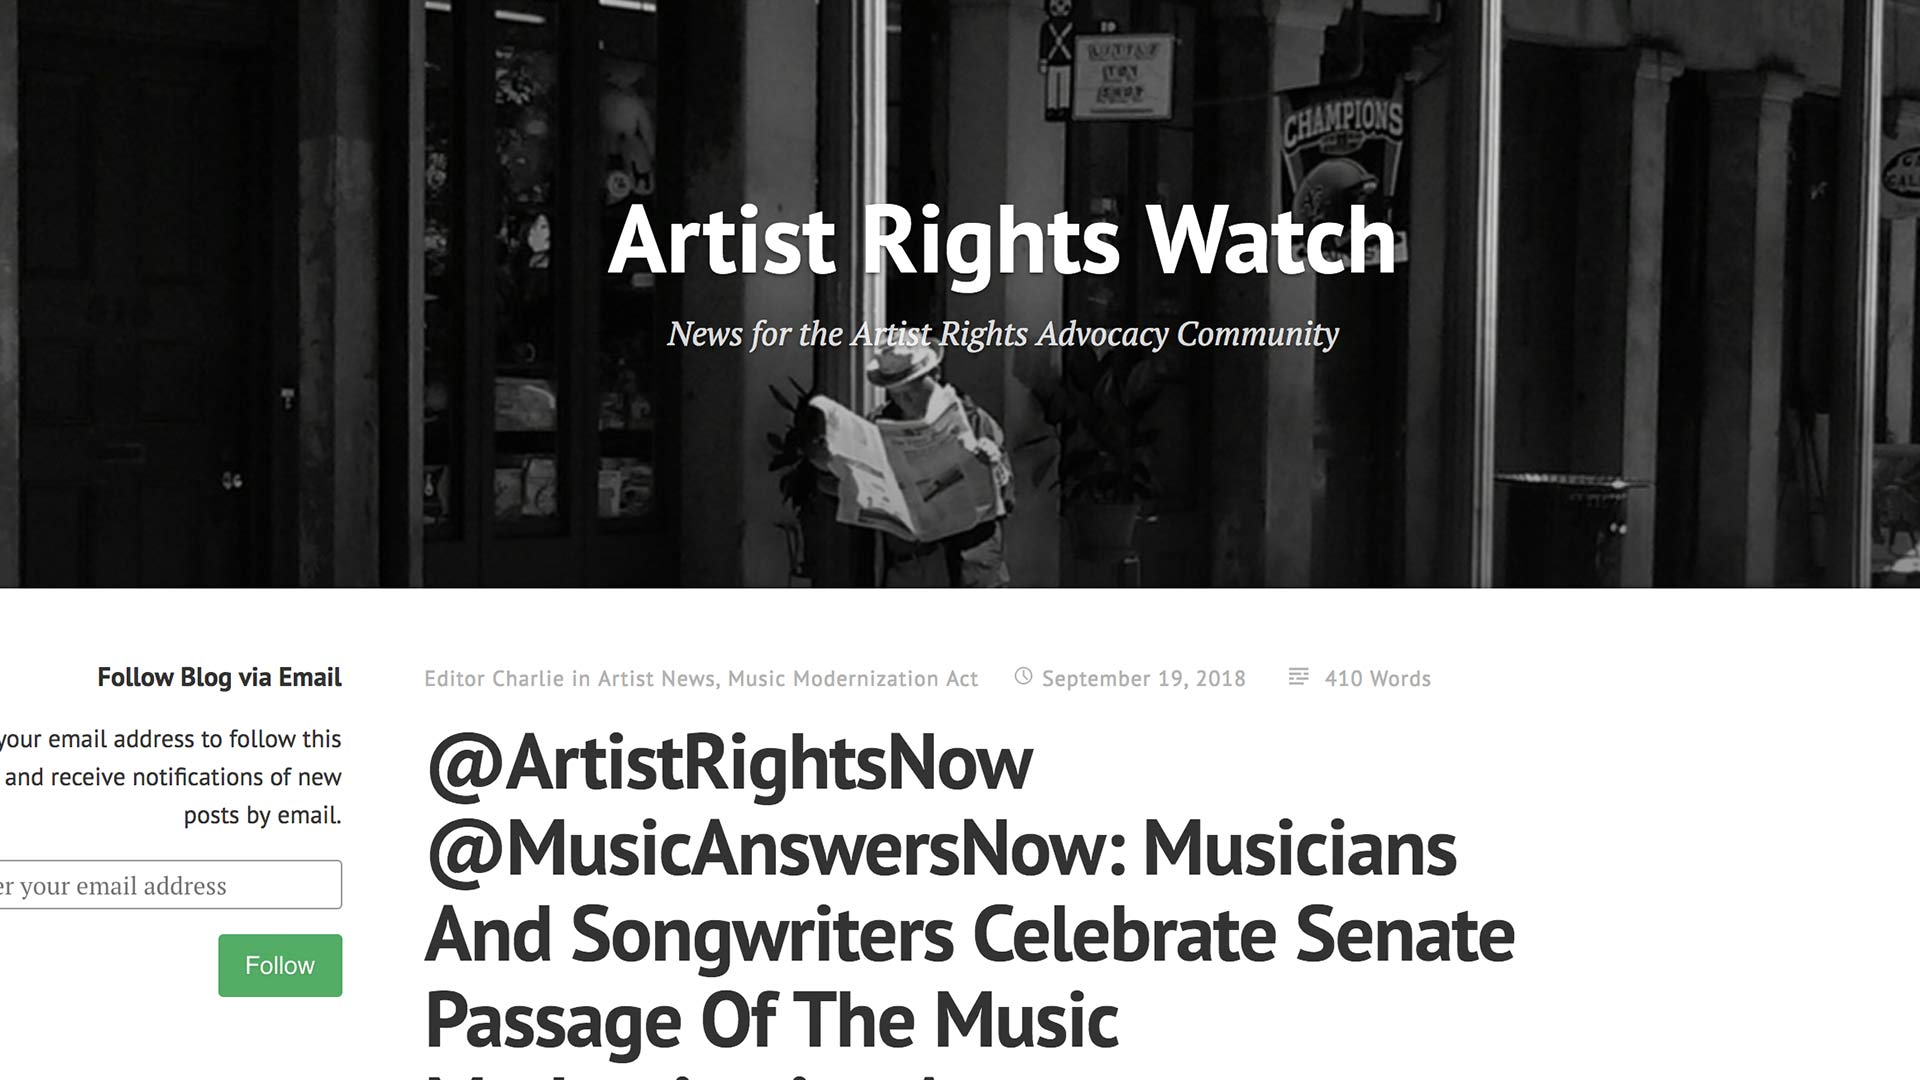 Fairness Rocks News @ArtistRightsNow @MusicAnswersNow: Musicians And Songwriters Celebrate Senate Passage Of The Music Modernization Act